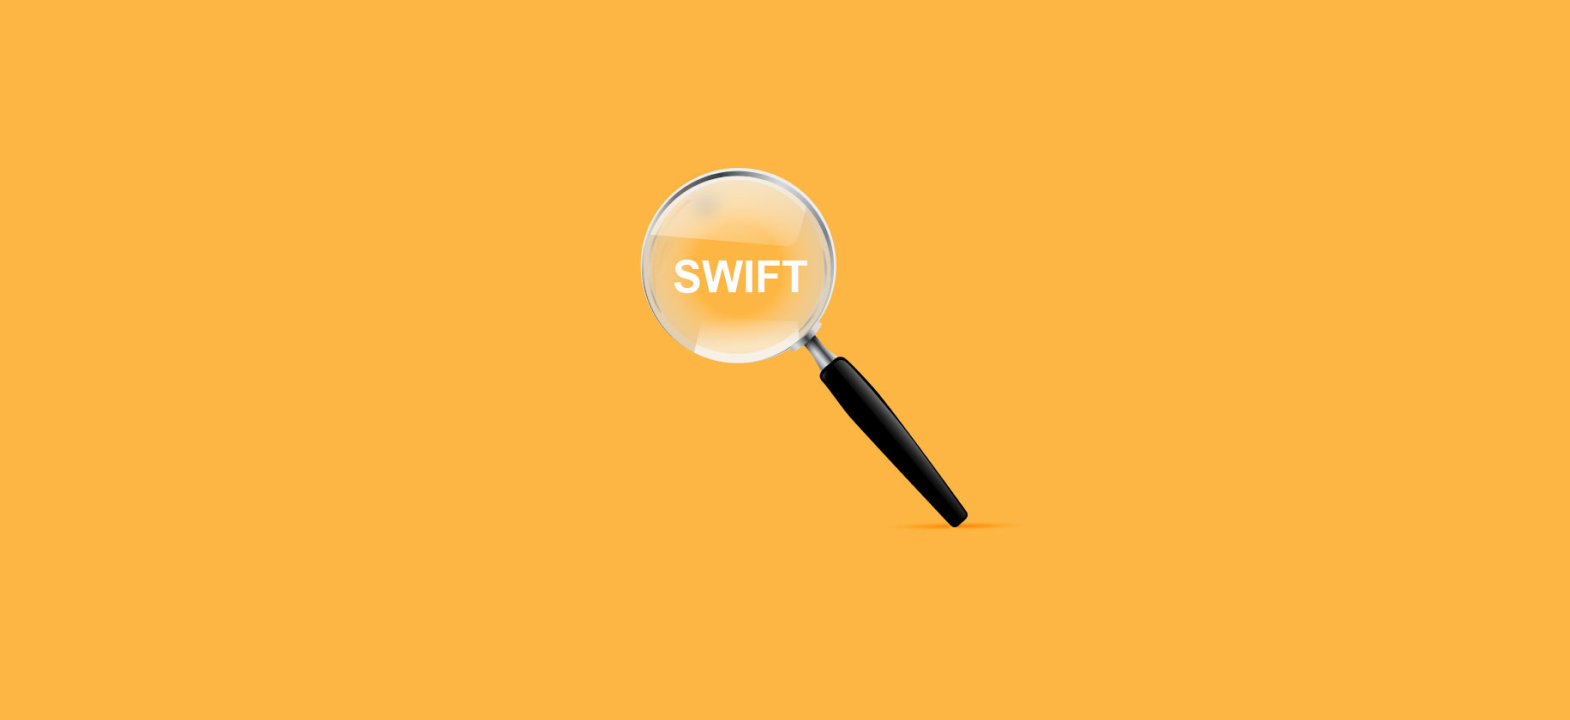 SWIFT Meaning In Banking: What Is It?